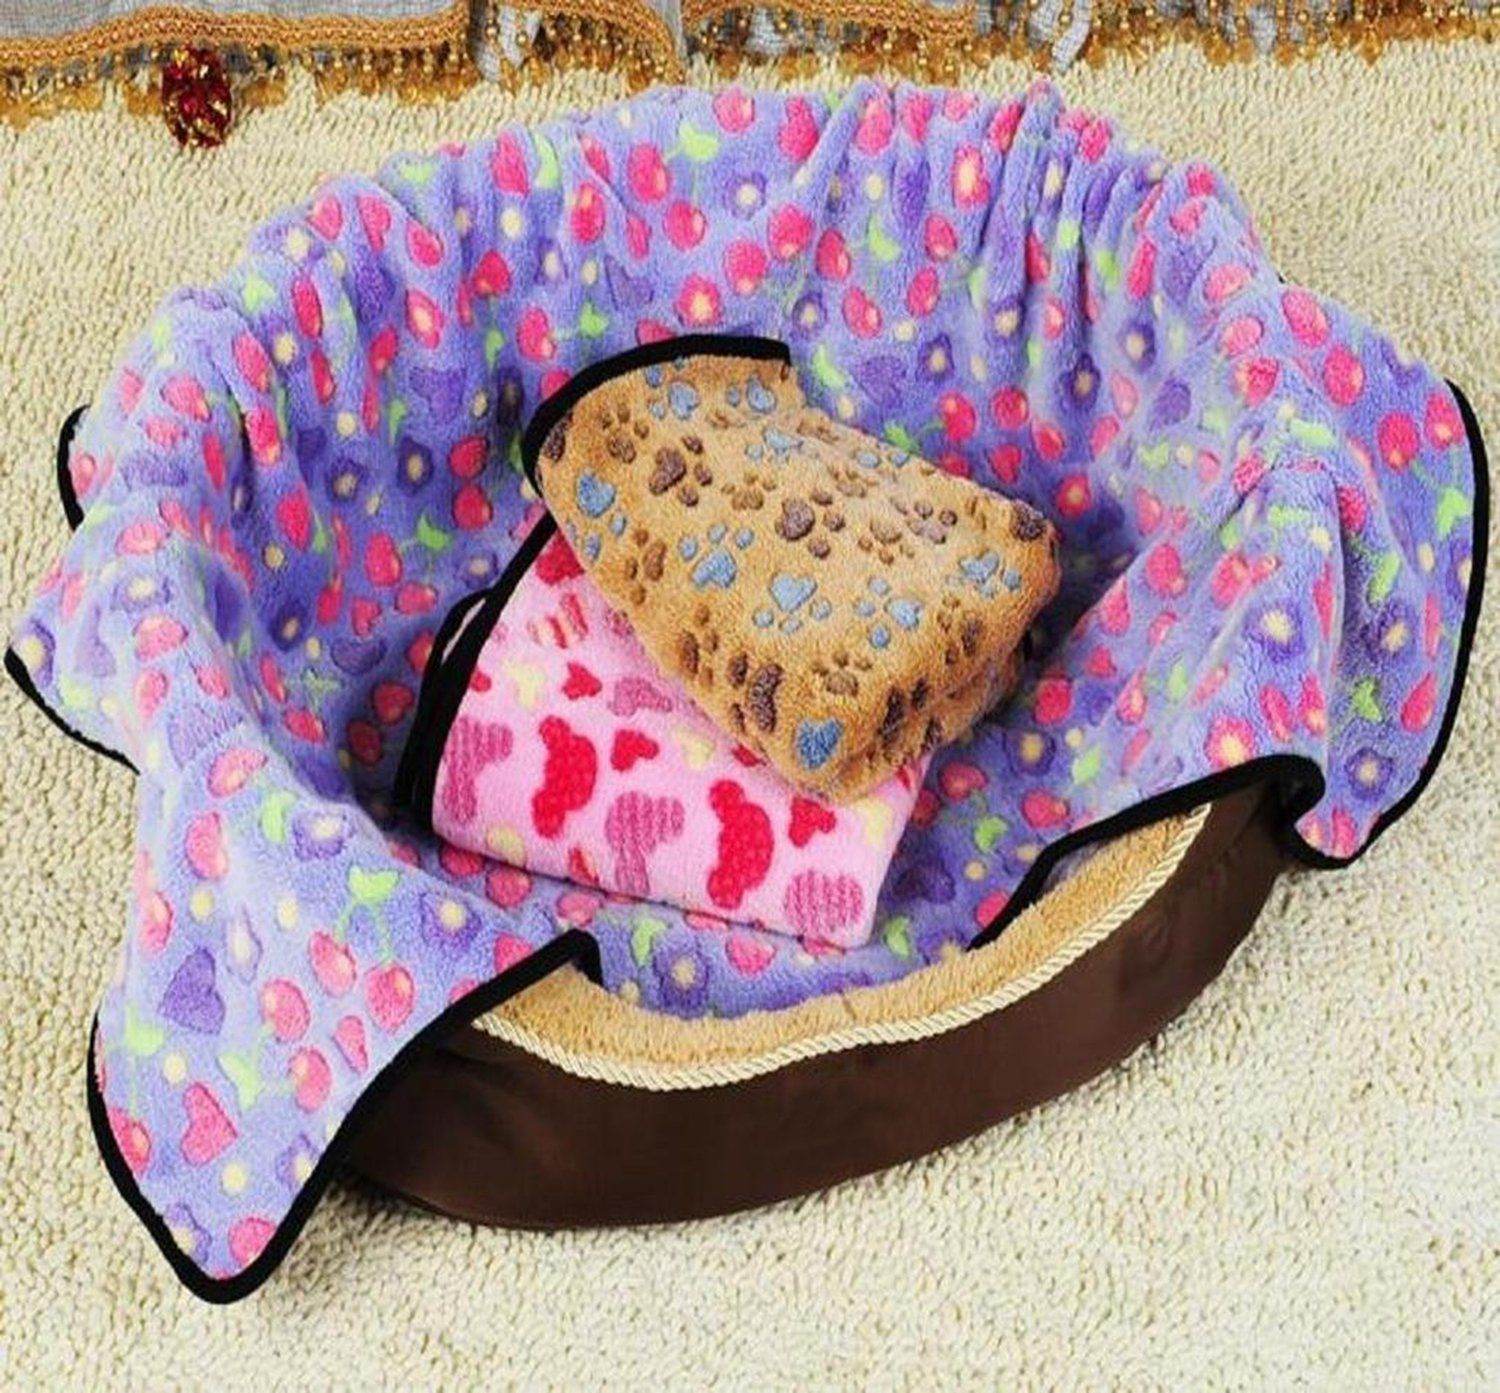 Soft Blanket Coral Fleece Warm Bed Mat Paw Print For Small